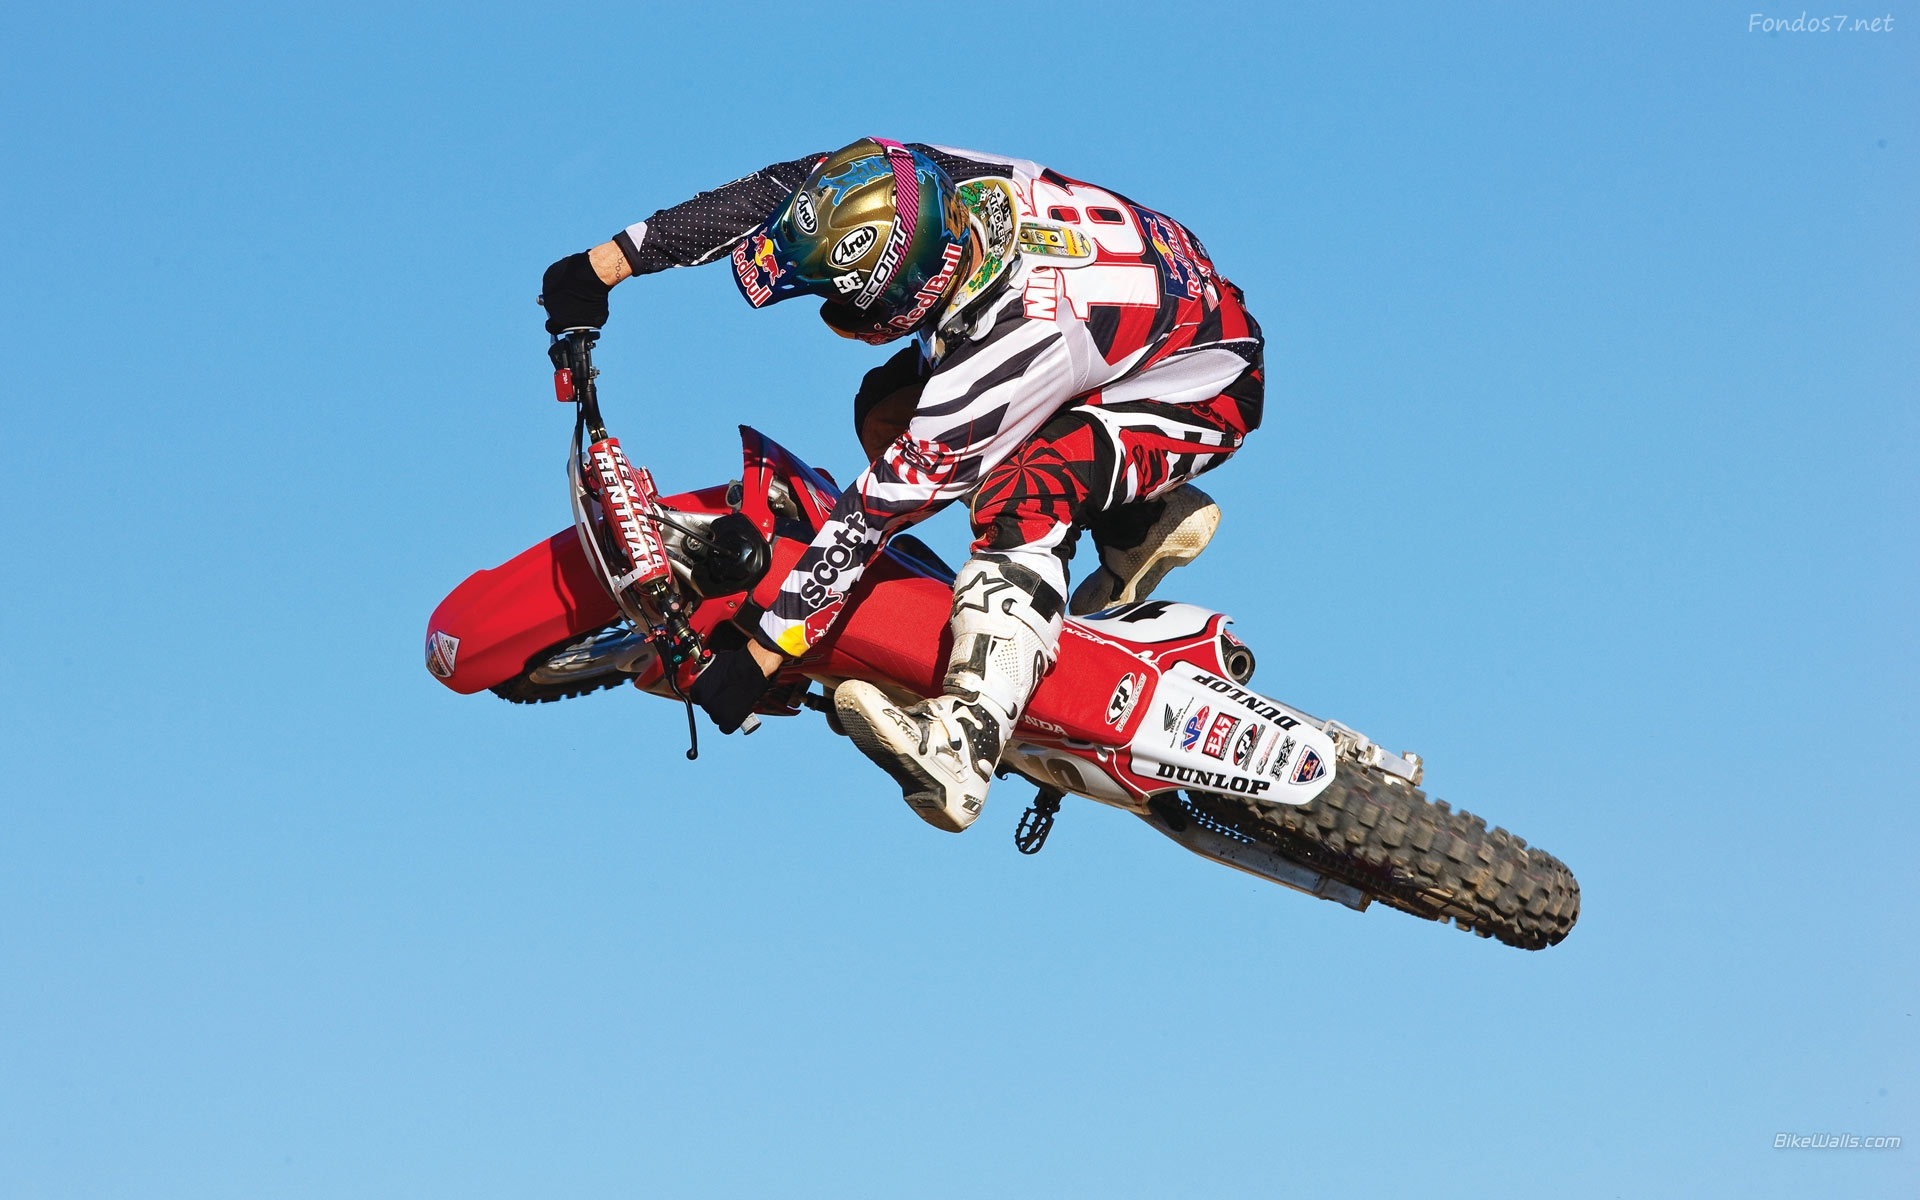 Descargar Fondos de pantalla motocross honda red bull hd widescreen 1920x1200